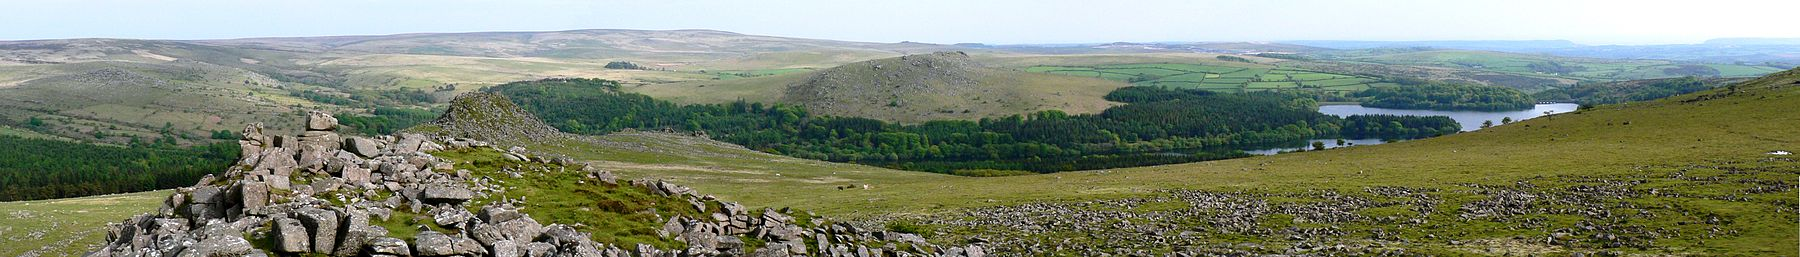 On Dartmoor, looking towards Burrator Reservoir & Plymouth